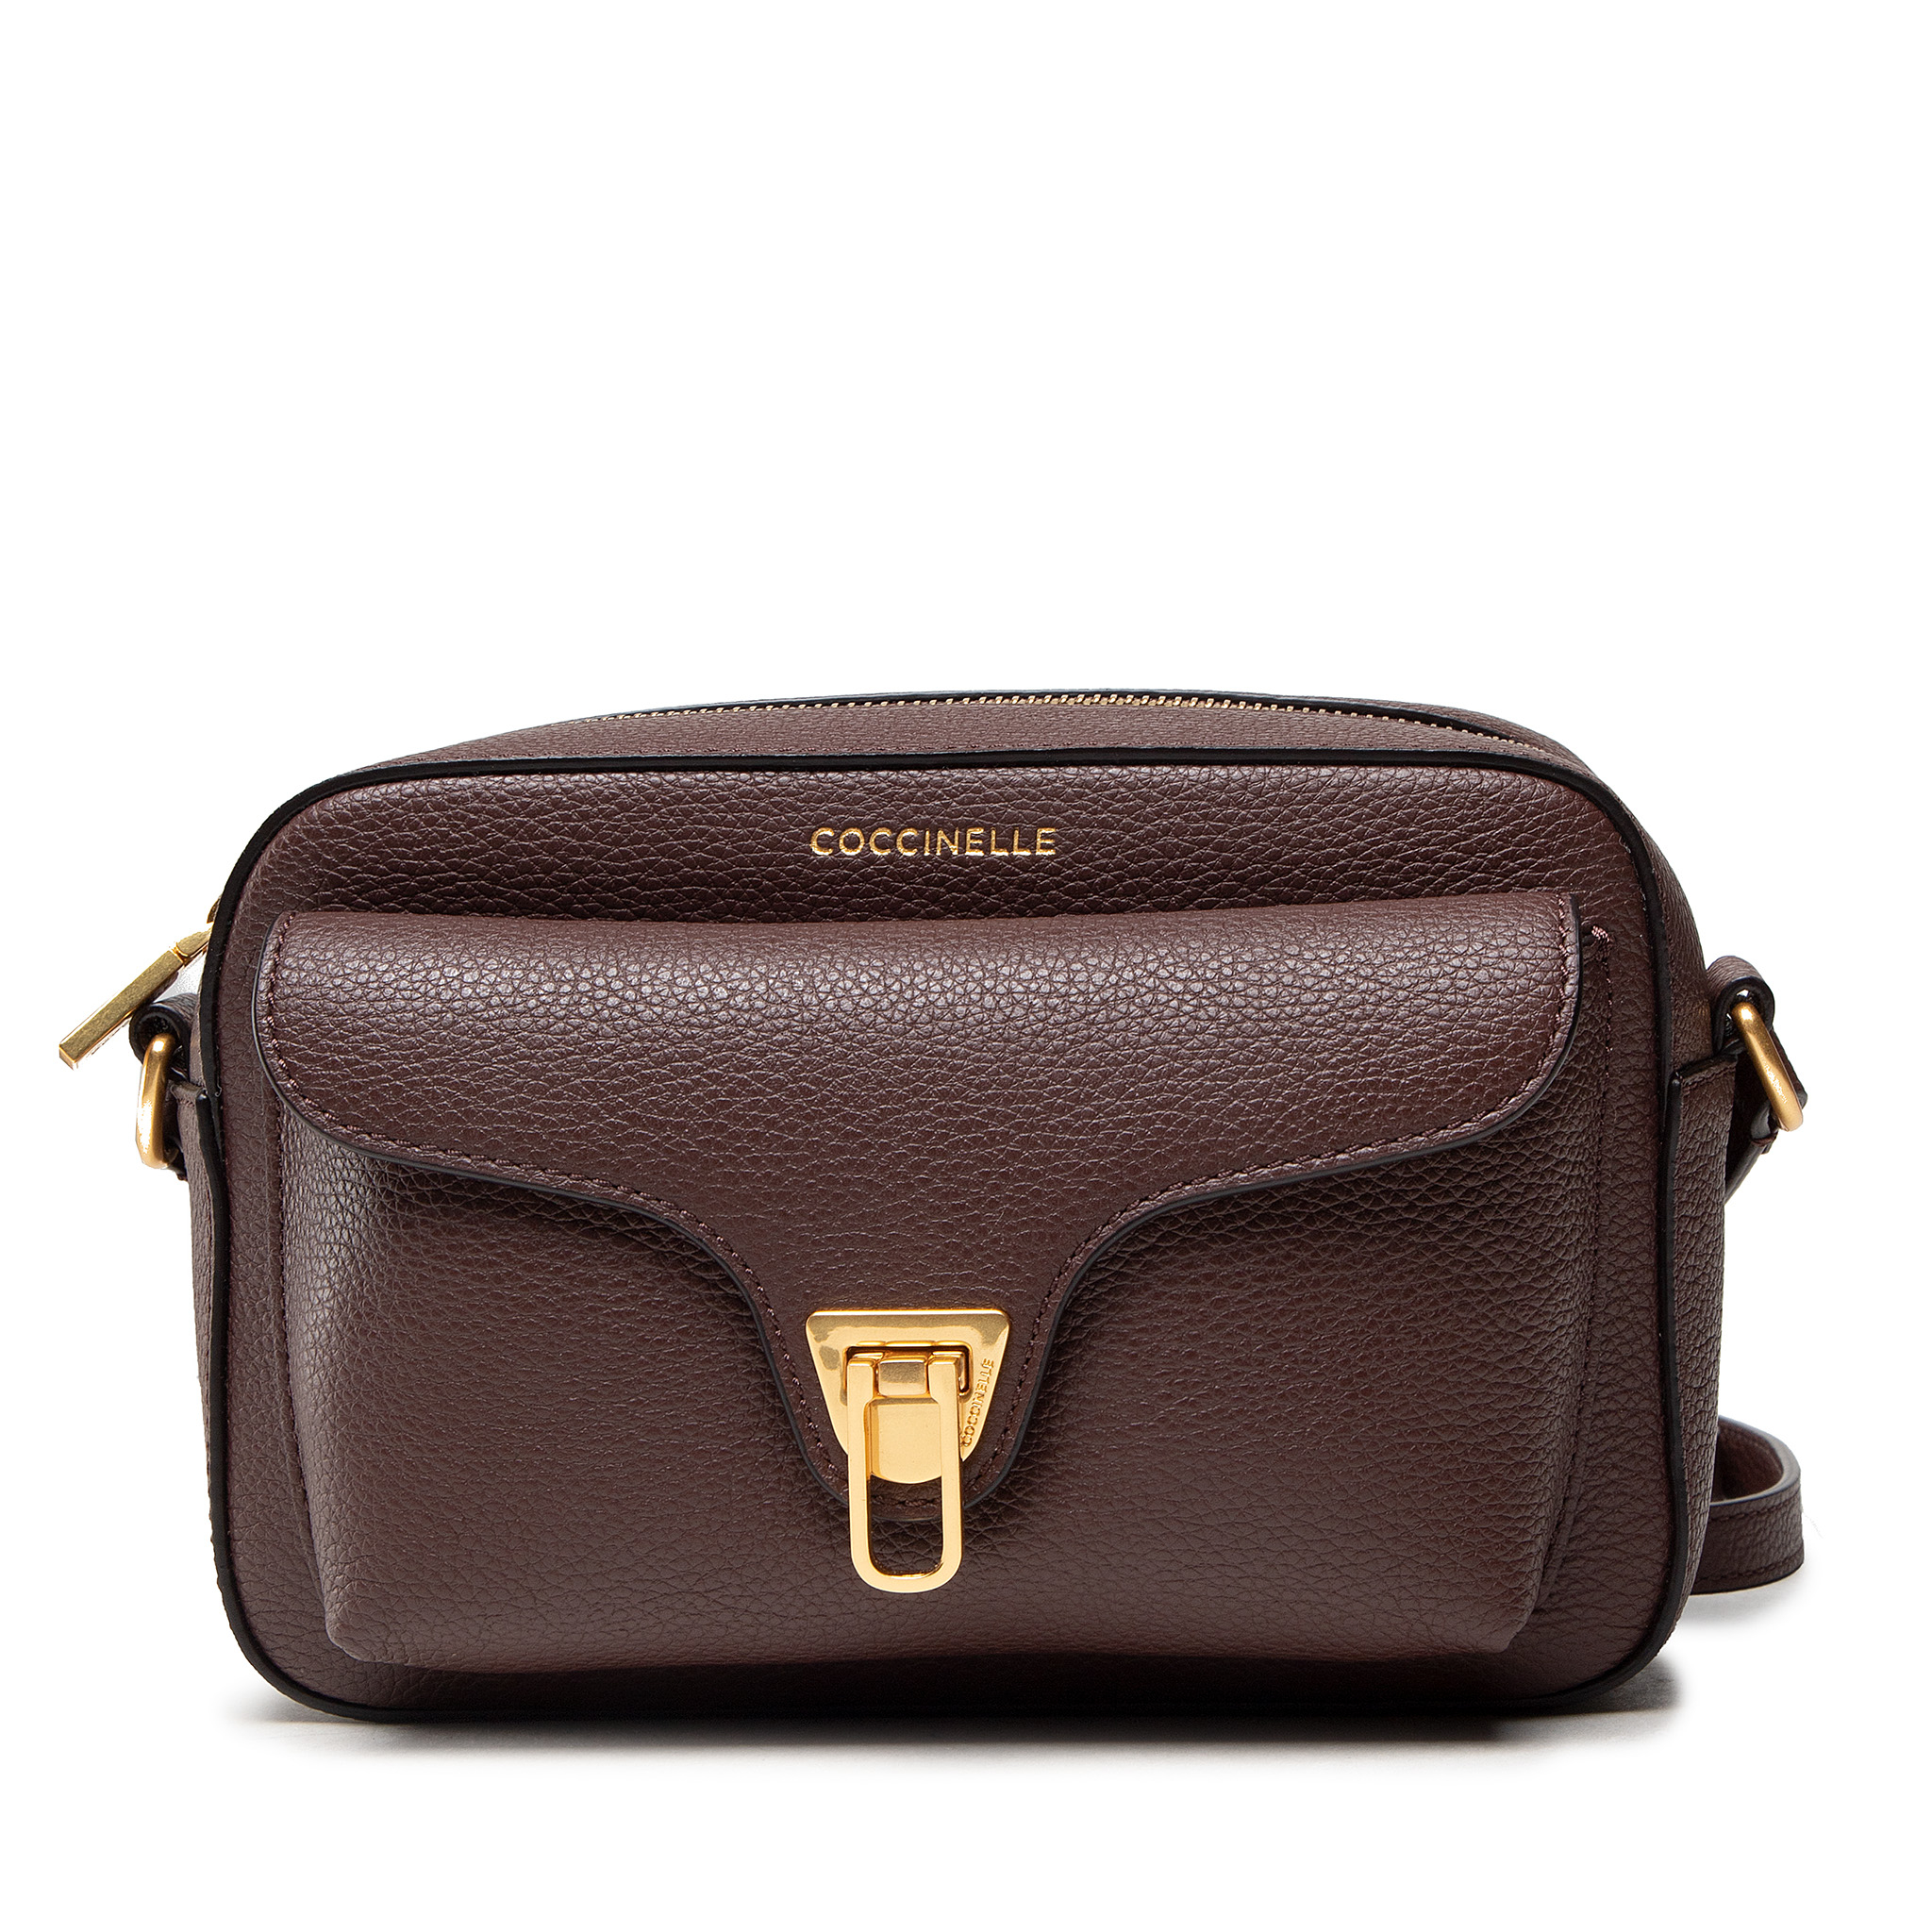 Coccinelle IF6 Beat Soft E1 IF6 15 02 01 Chocolate W05